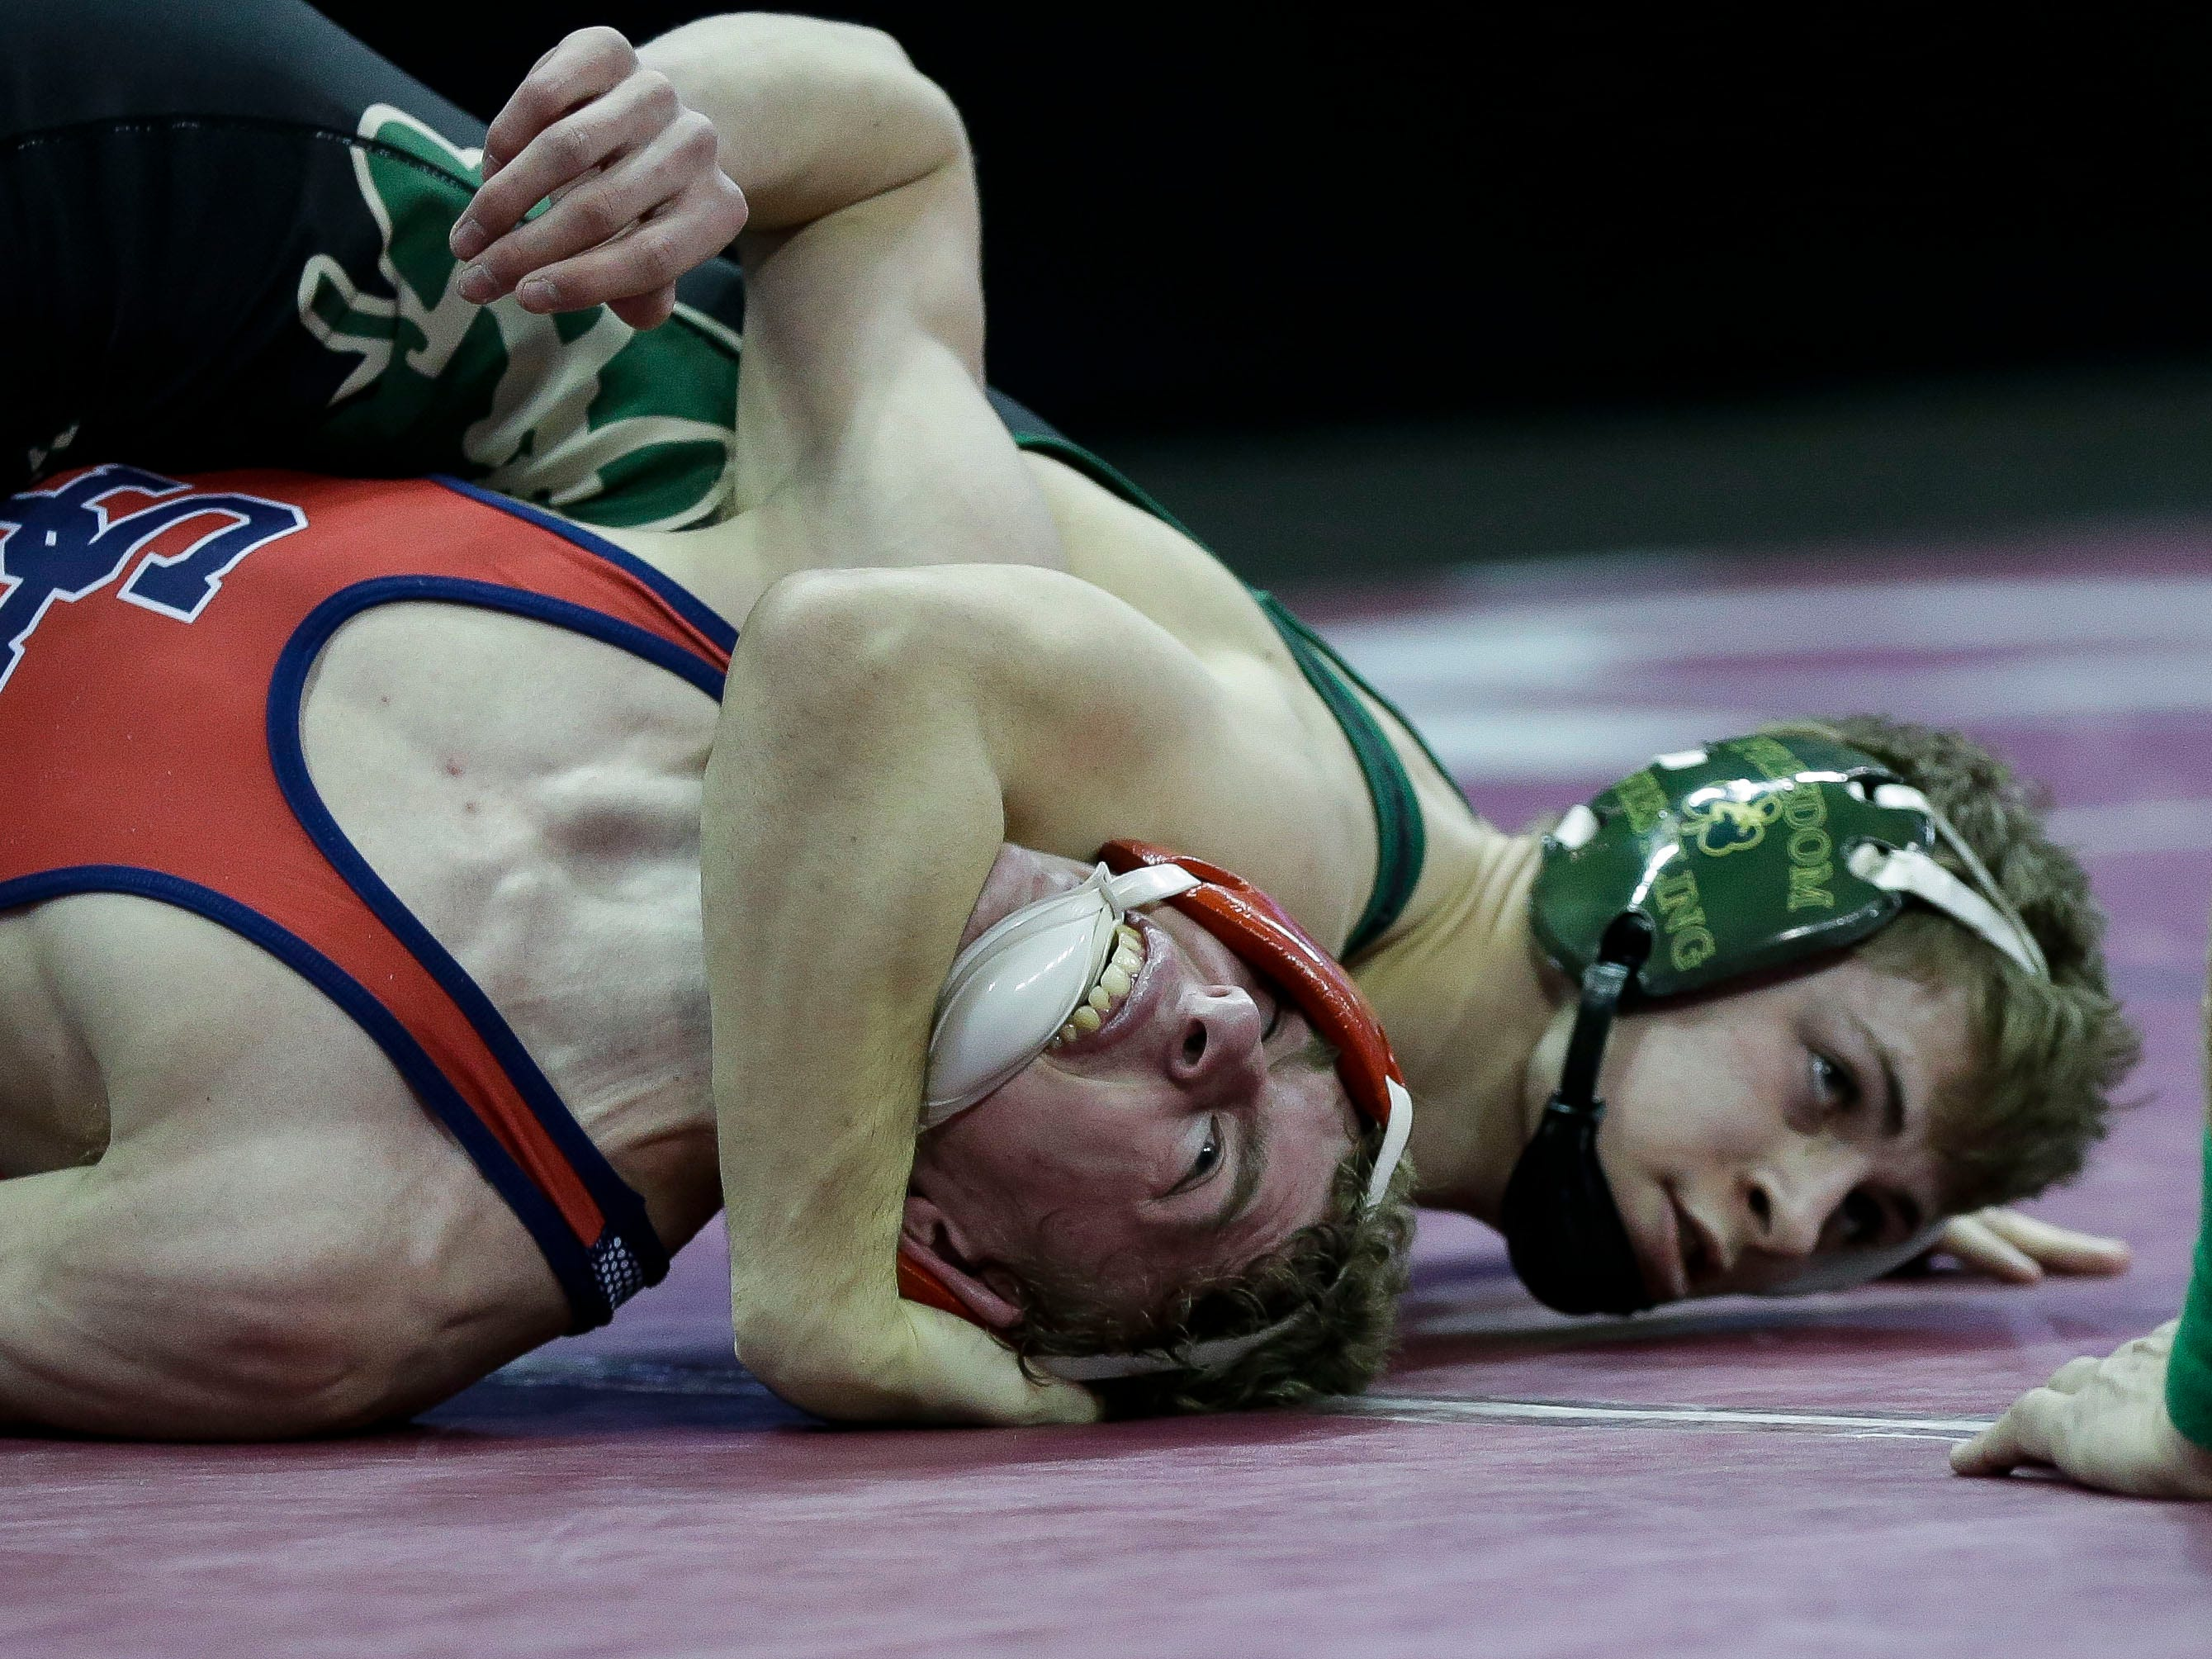 Spencer/Columbus Catholic's Ashton Ackman is pinned by Freedom's Colby McHugh in a Division 2 120-pound preliminary match during the WIAA state wrestling tournament on Thursday, February 21, 2019, at the Kohl Center in Madison, Wis.